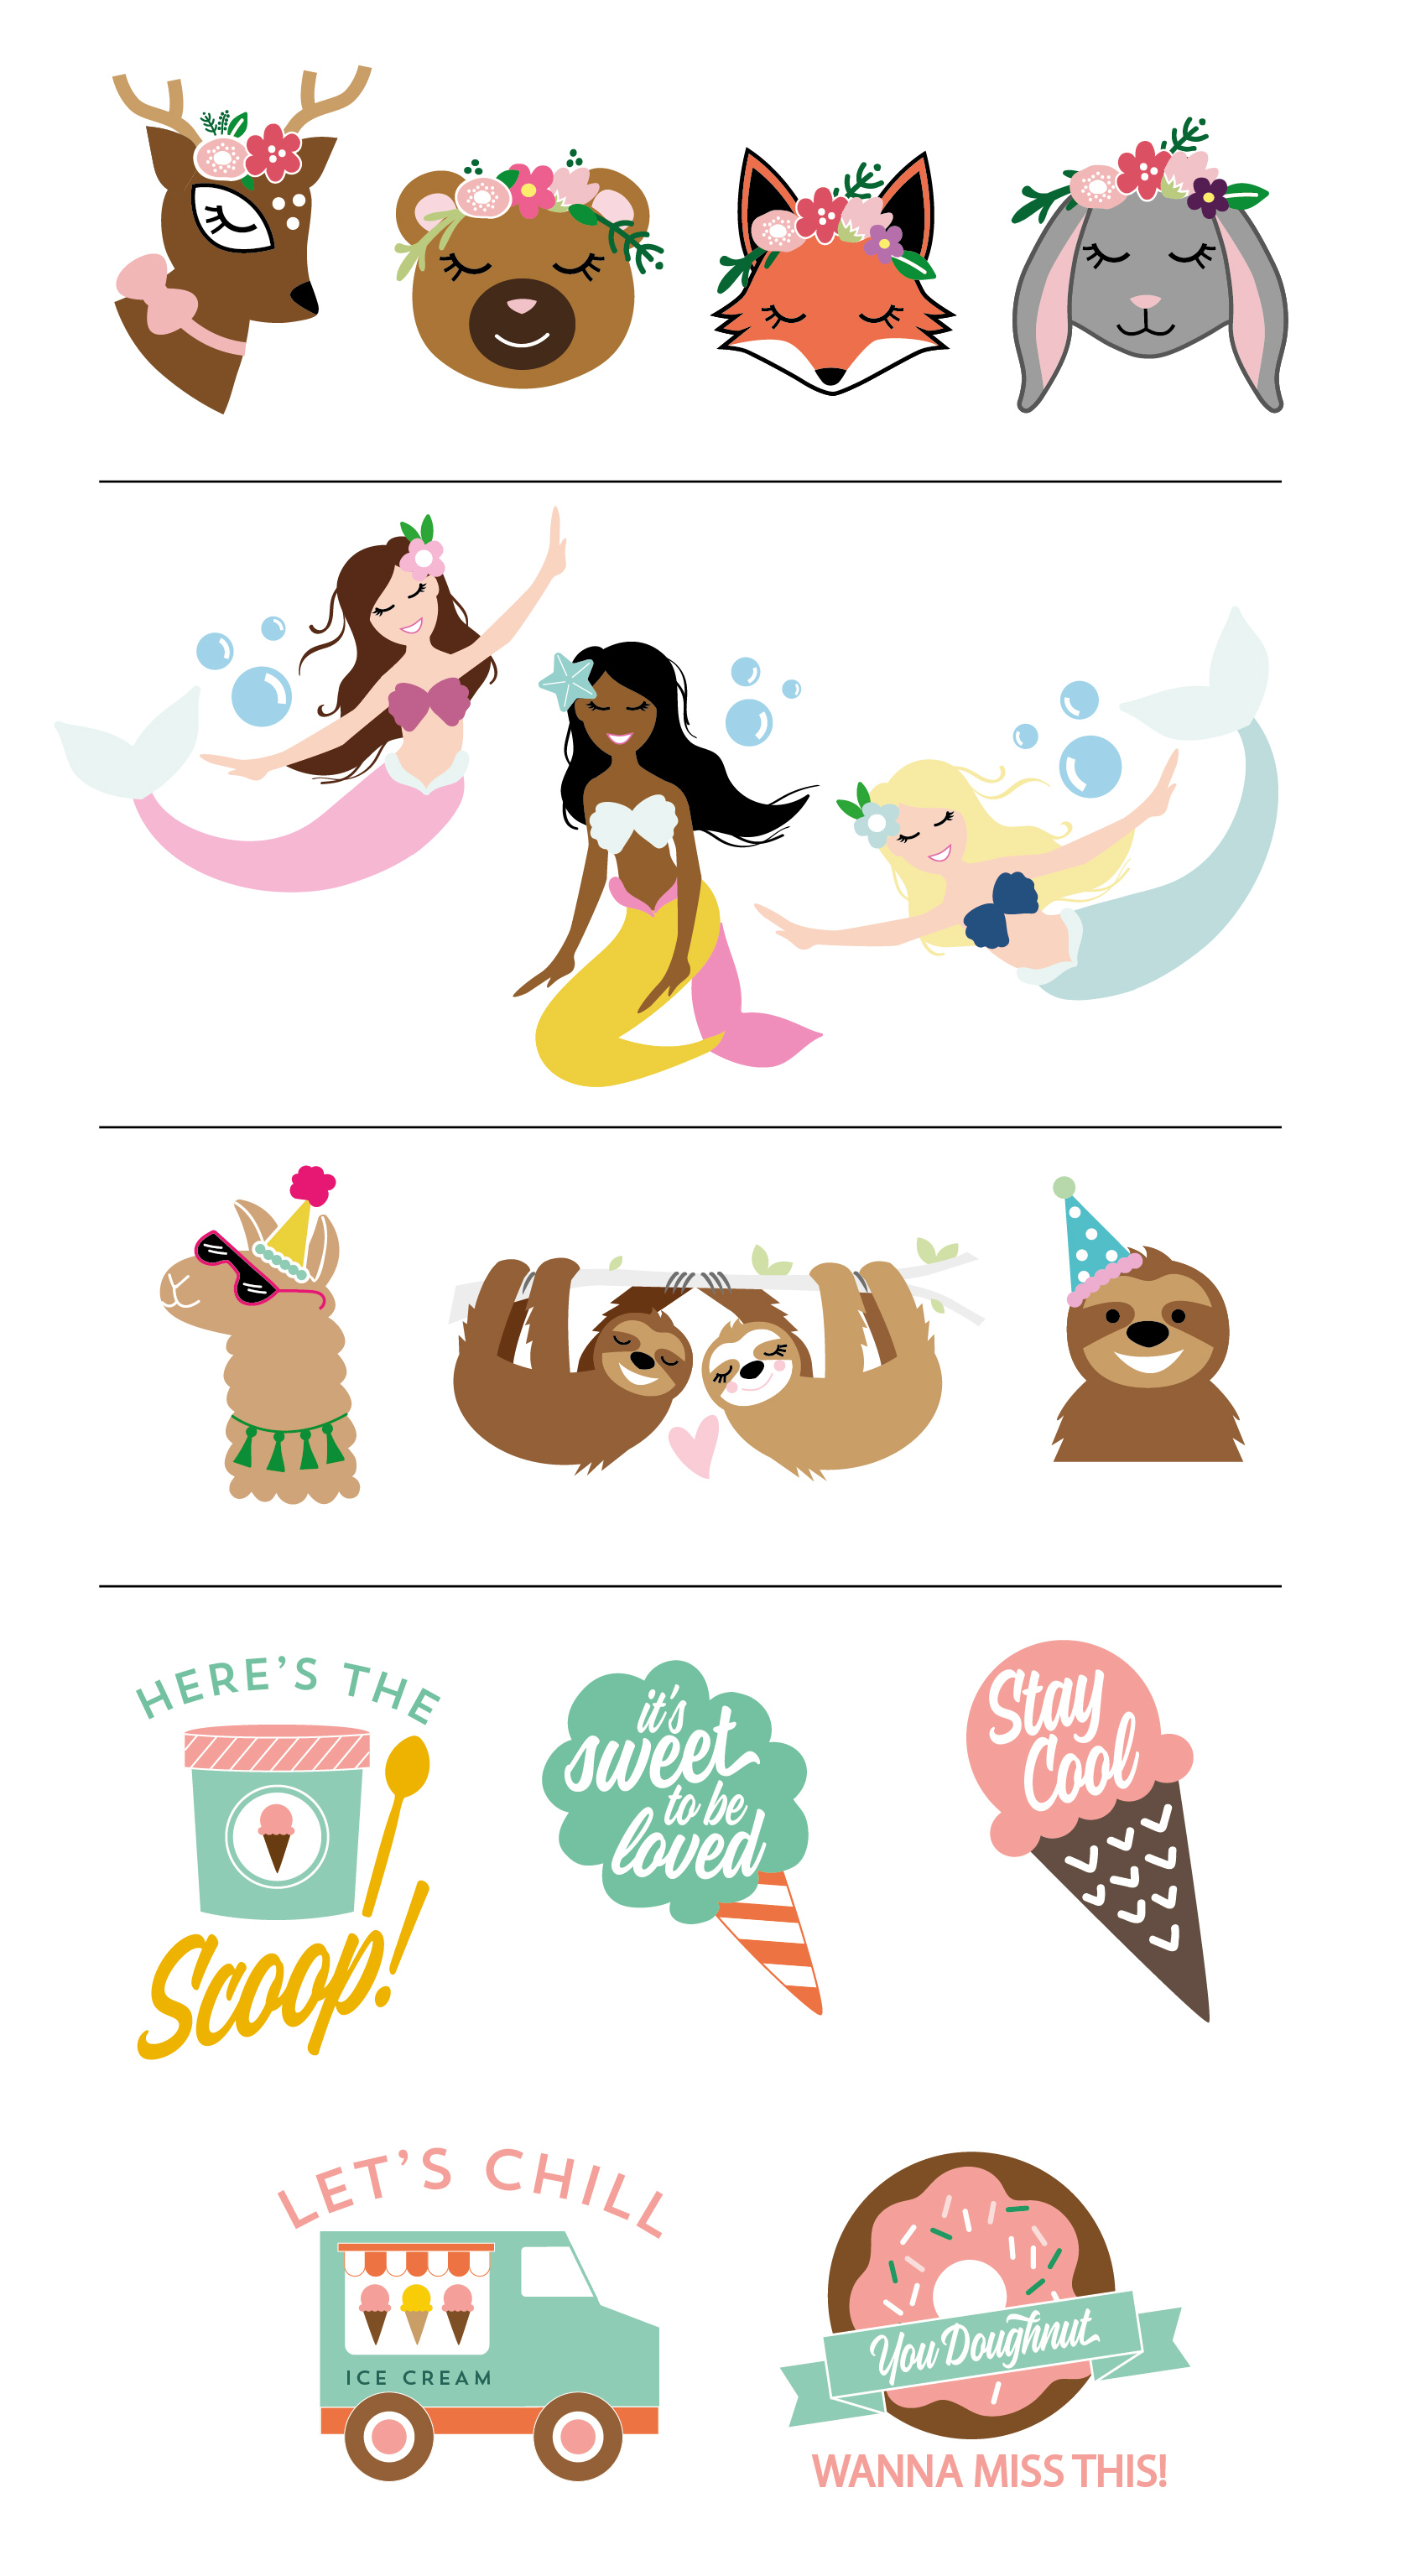 Various Illustrations for Greeting Cards and Sticker Designs by Leonora of Yellow Heart Art